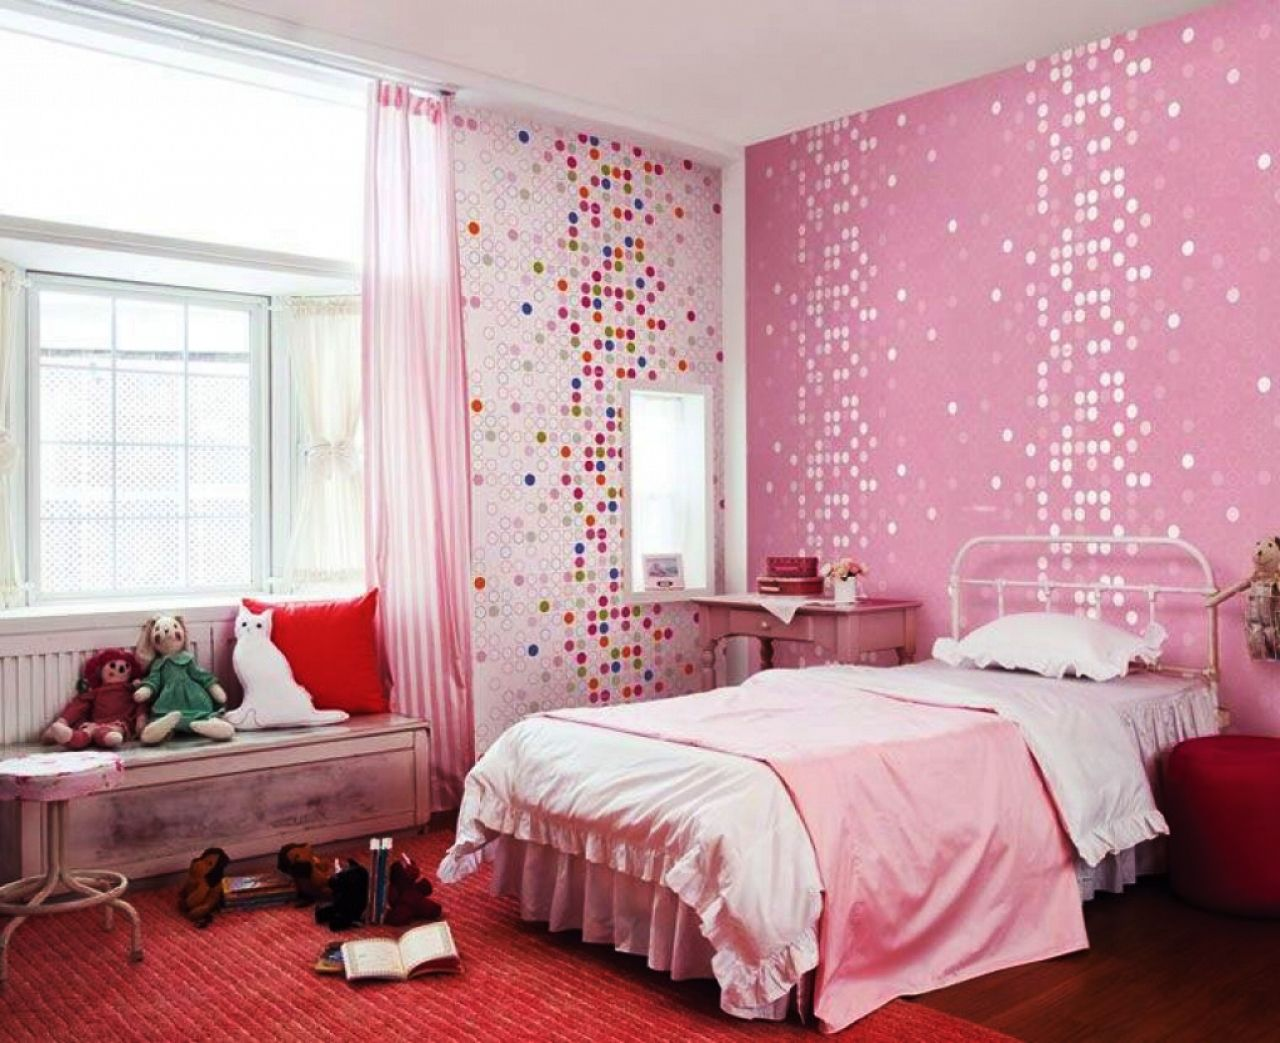 Kids Room Cute Pink Dotty Wallpaper Girls Bedroom Home Design Girls Bed  Room Design Ideas Girls Teenage Bed Room Interior Design